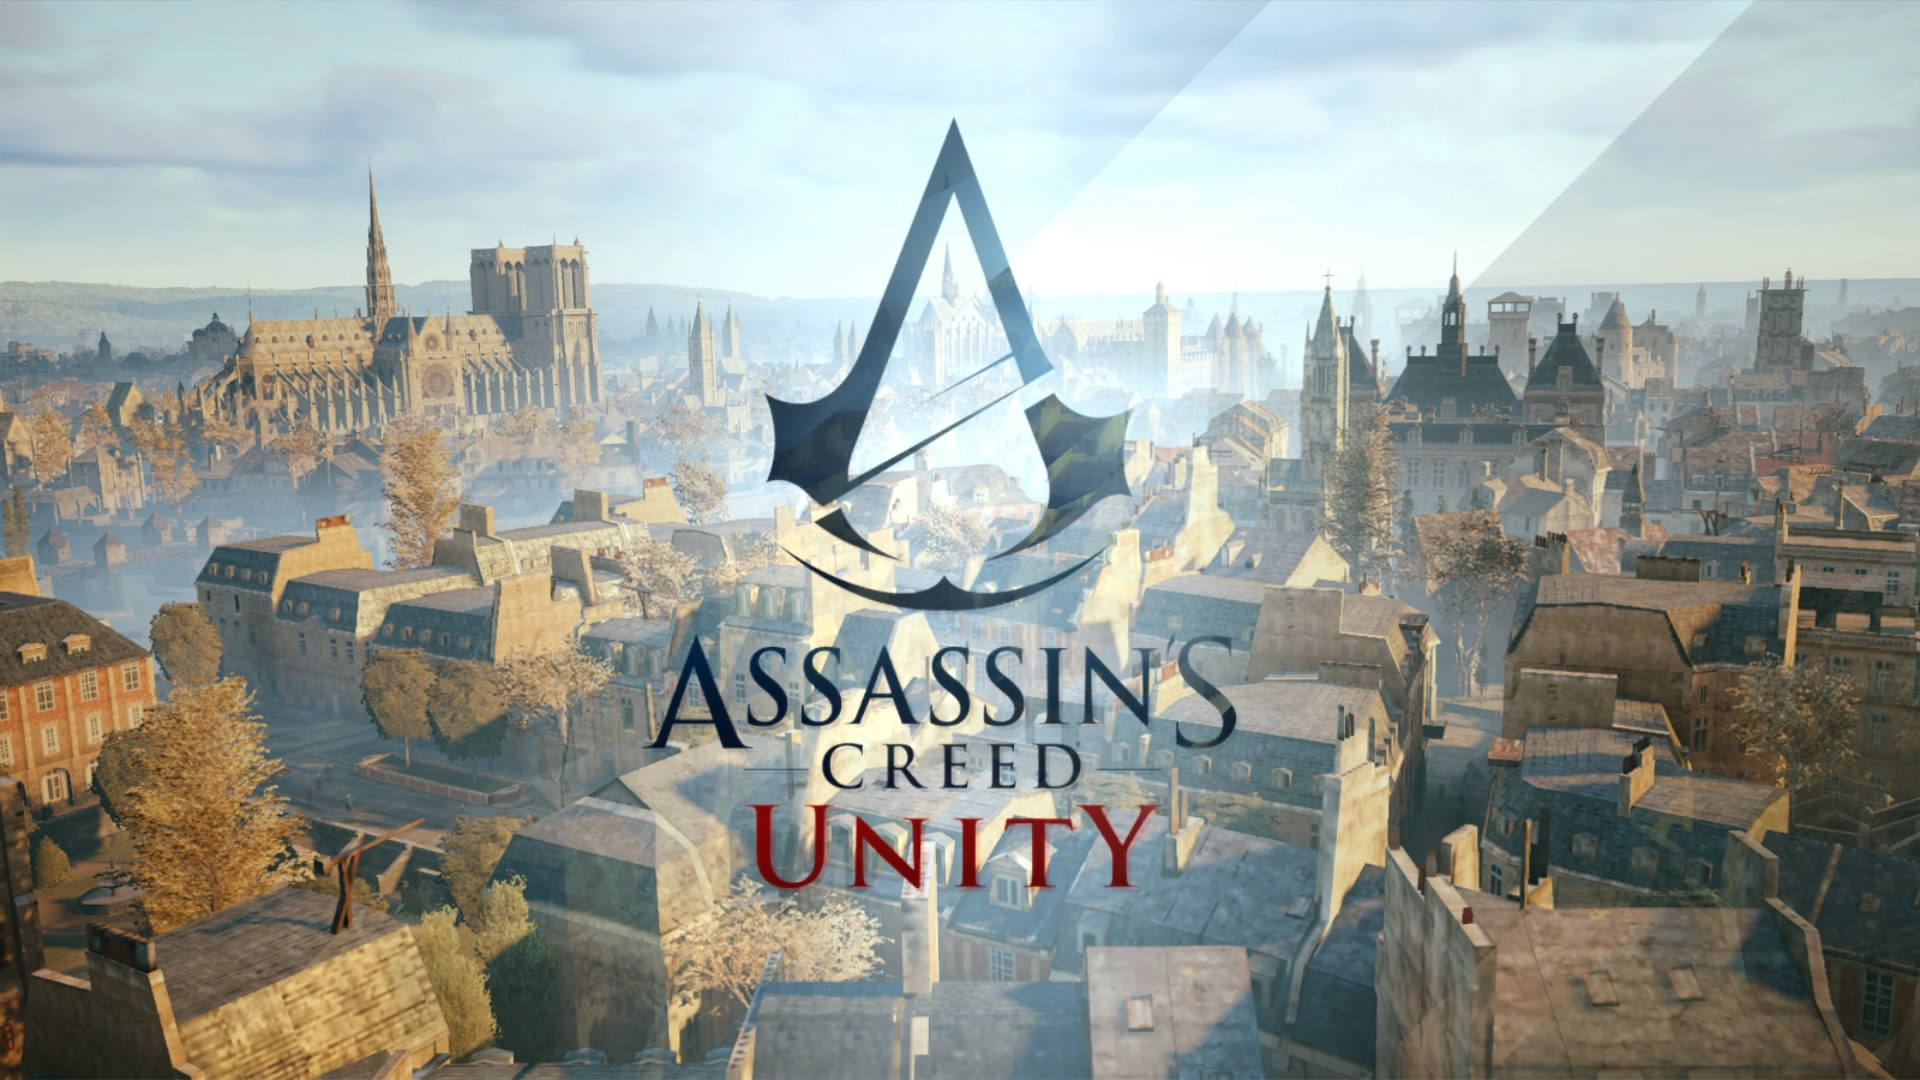 In-game obrázky z Assassin's Creed: Unity 101833